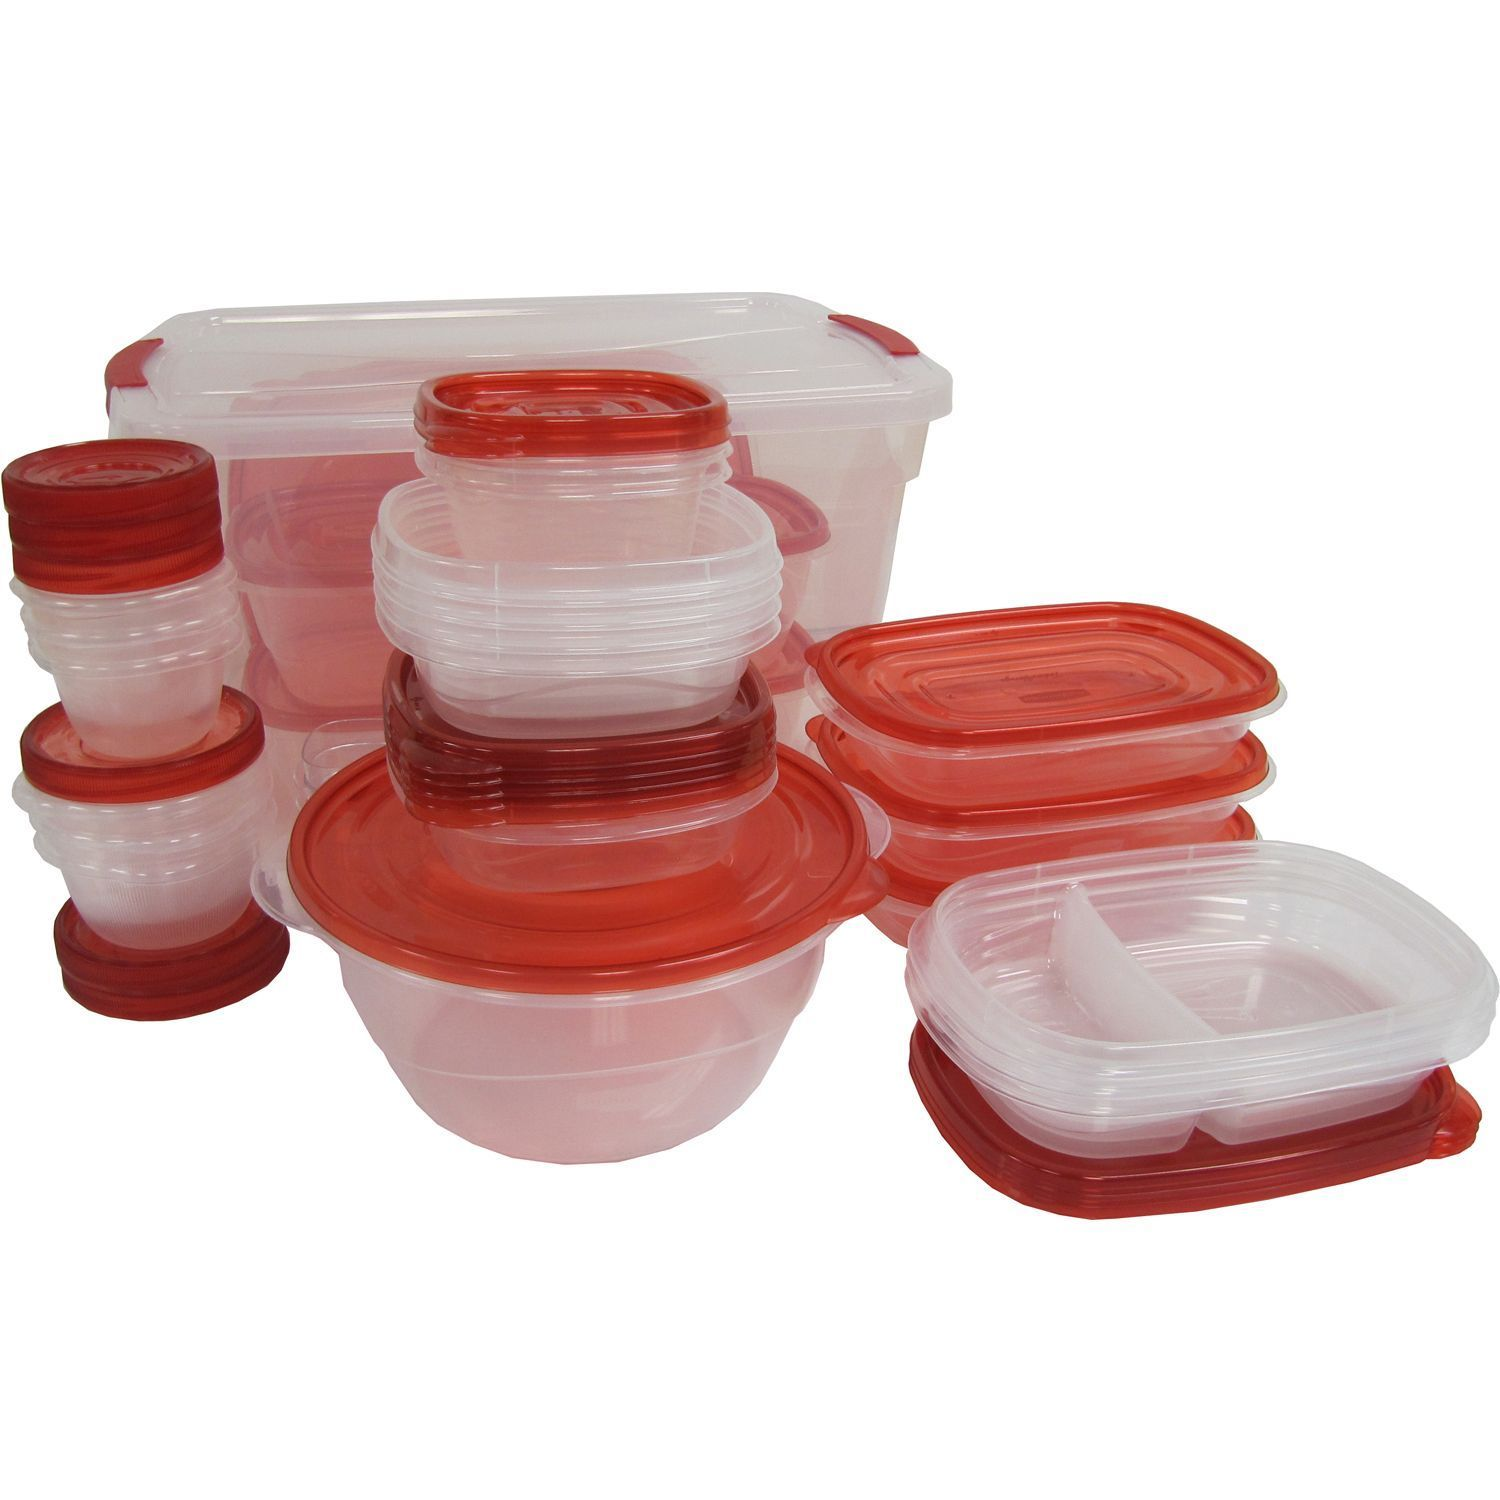 Rubbermaid TakeAlongs 62 Piece Food Storage Set NEW!!! 1